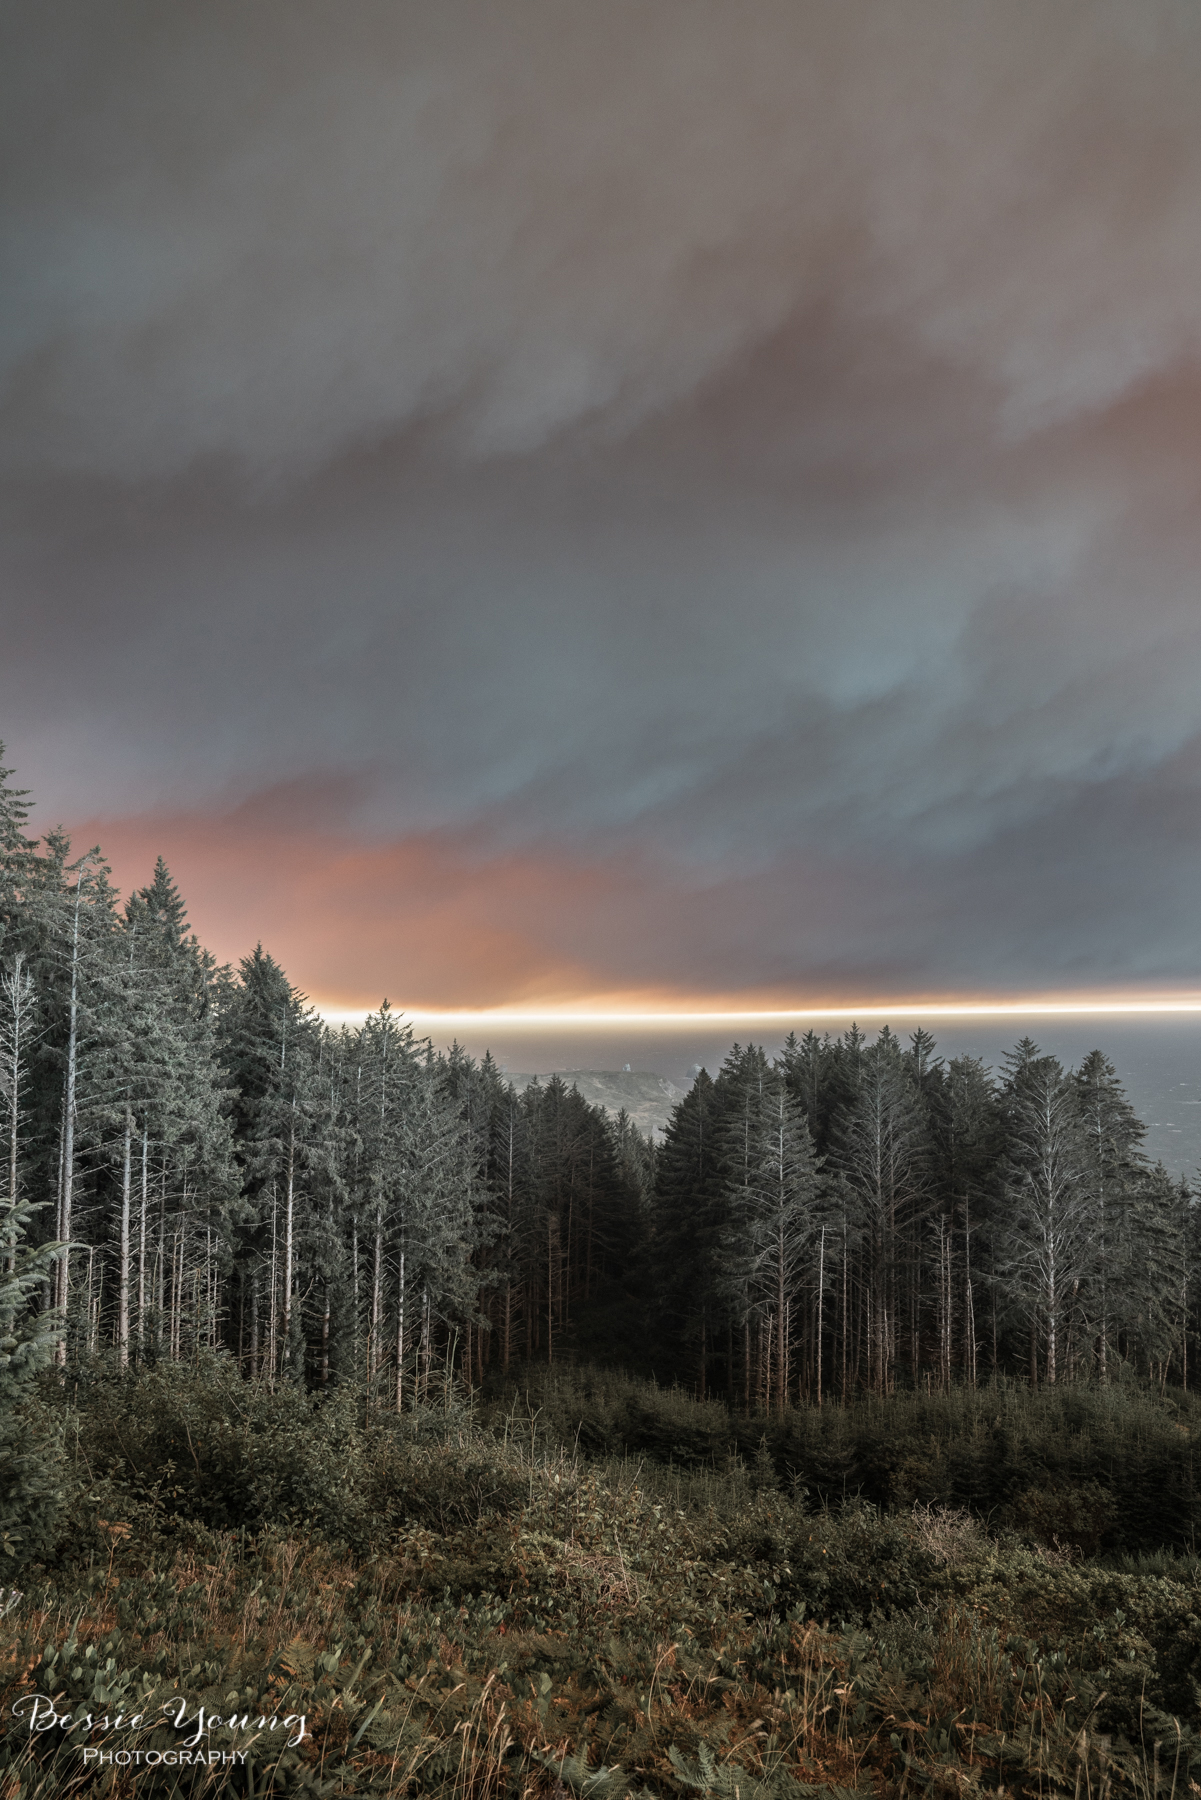 Chetco Bar Fire Brookings Oregon 2017 - Bessie Young Photography-5.jpg